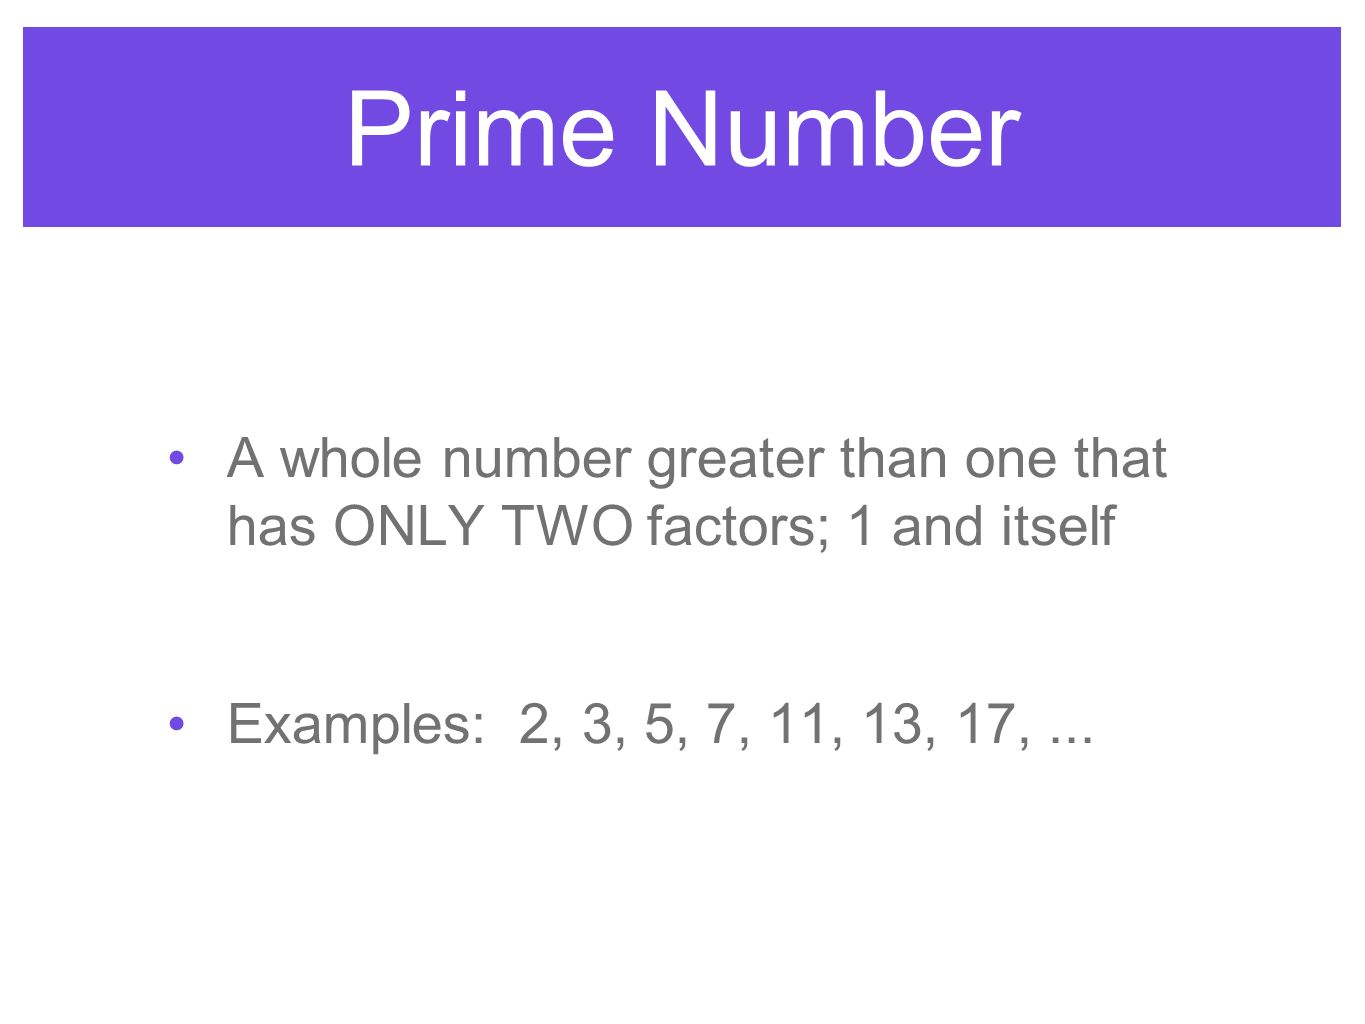 Prime Number A whole number greater than one that has ONLY TWO factors; 1 and itself.